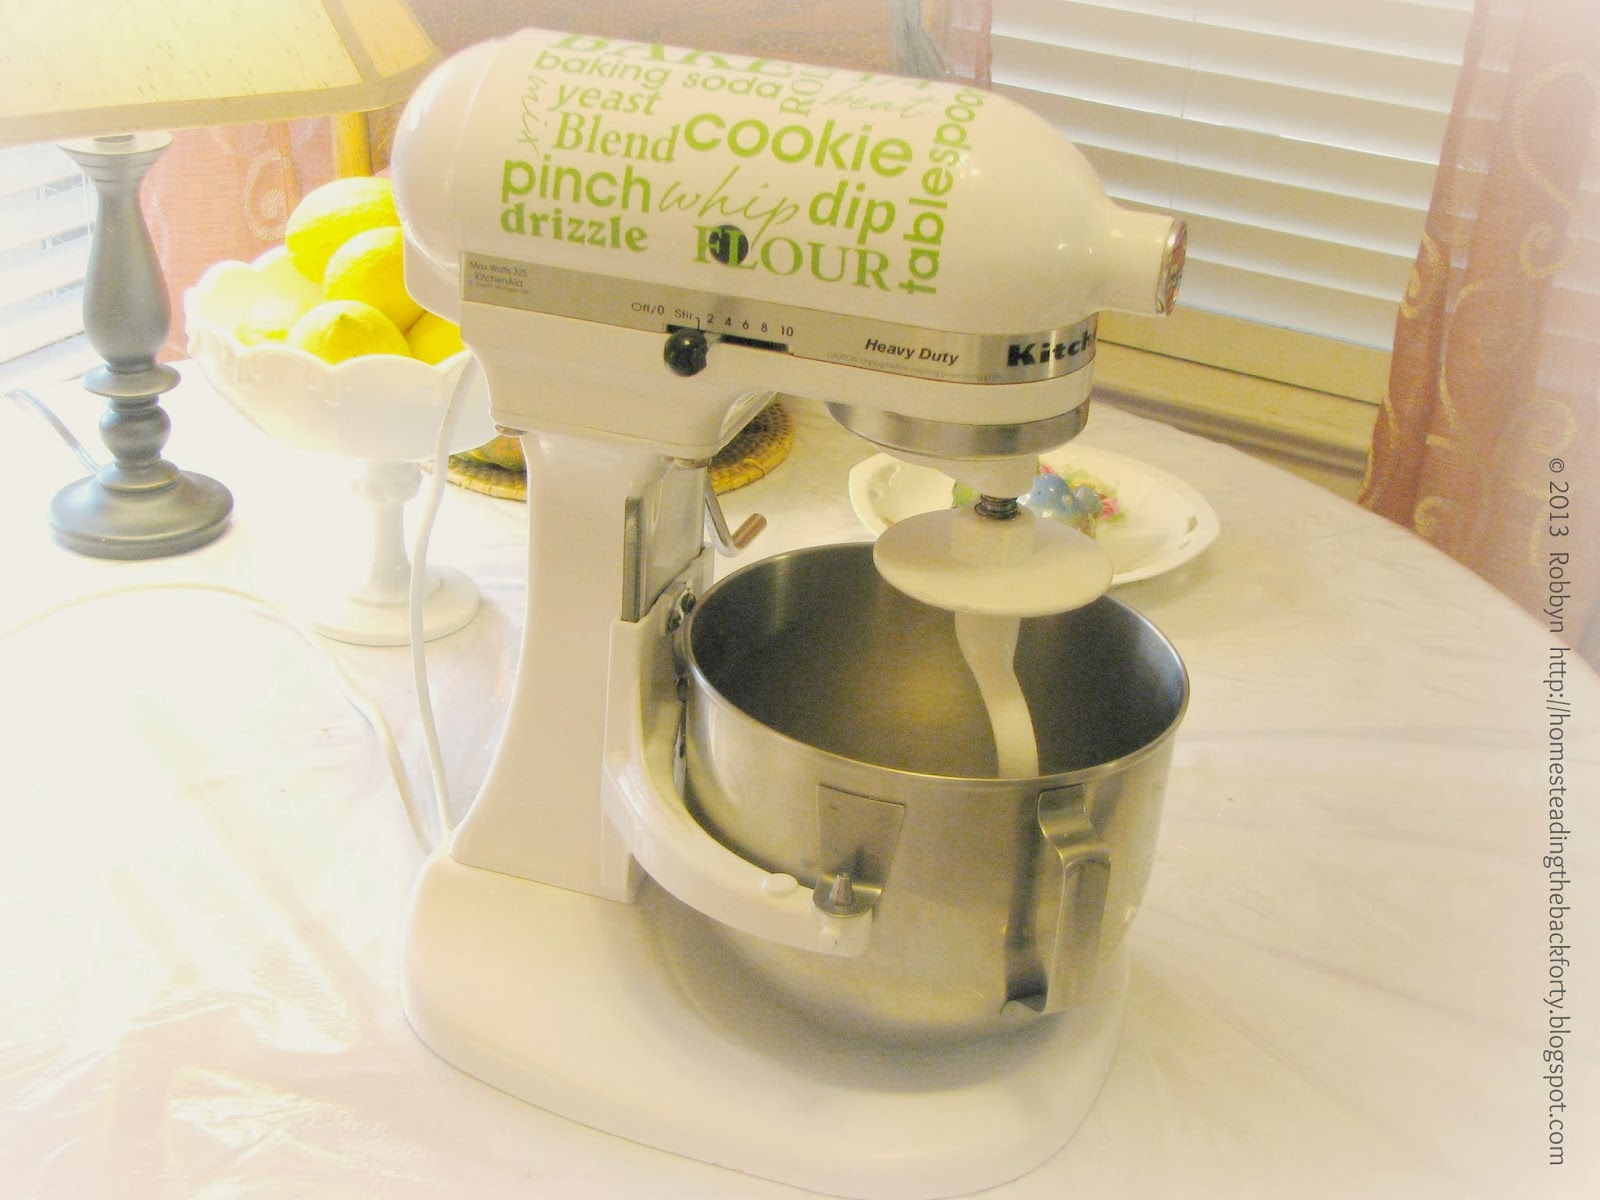 Lime Green Kitchen Aid Mixer With Glass Bowl